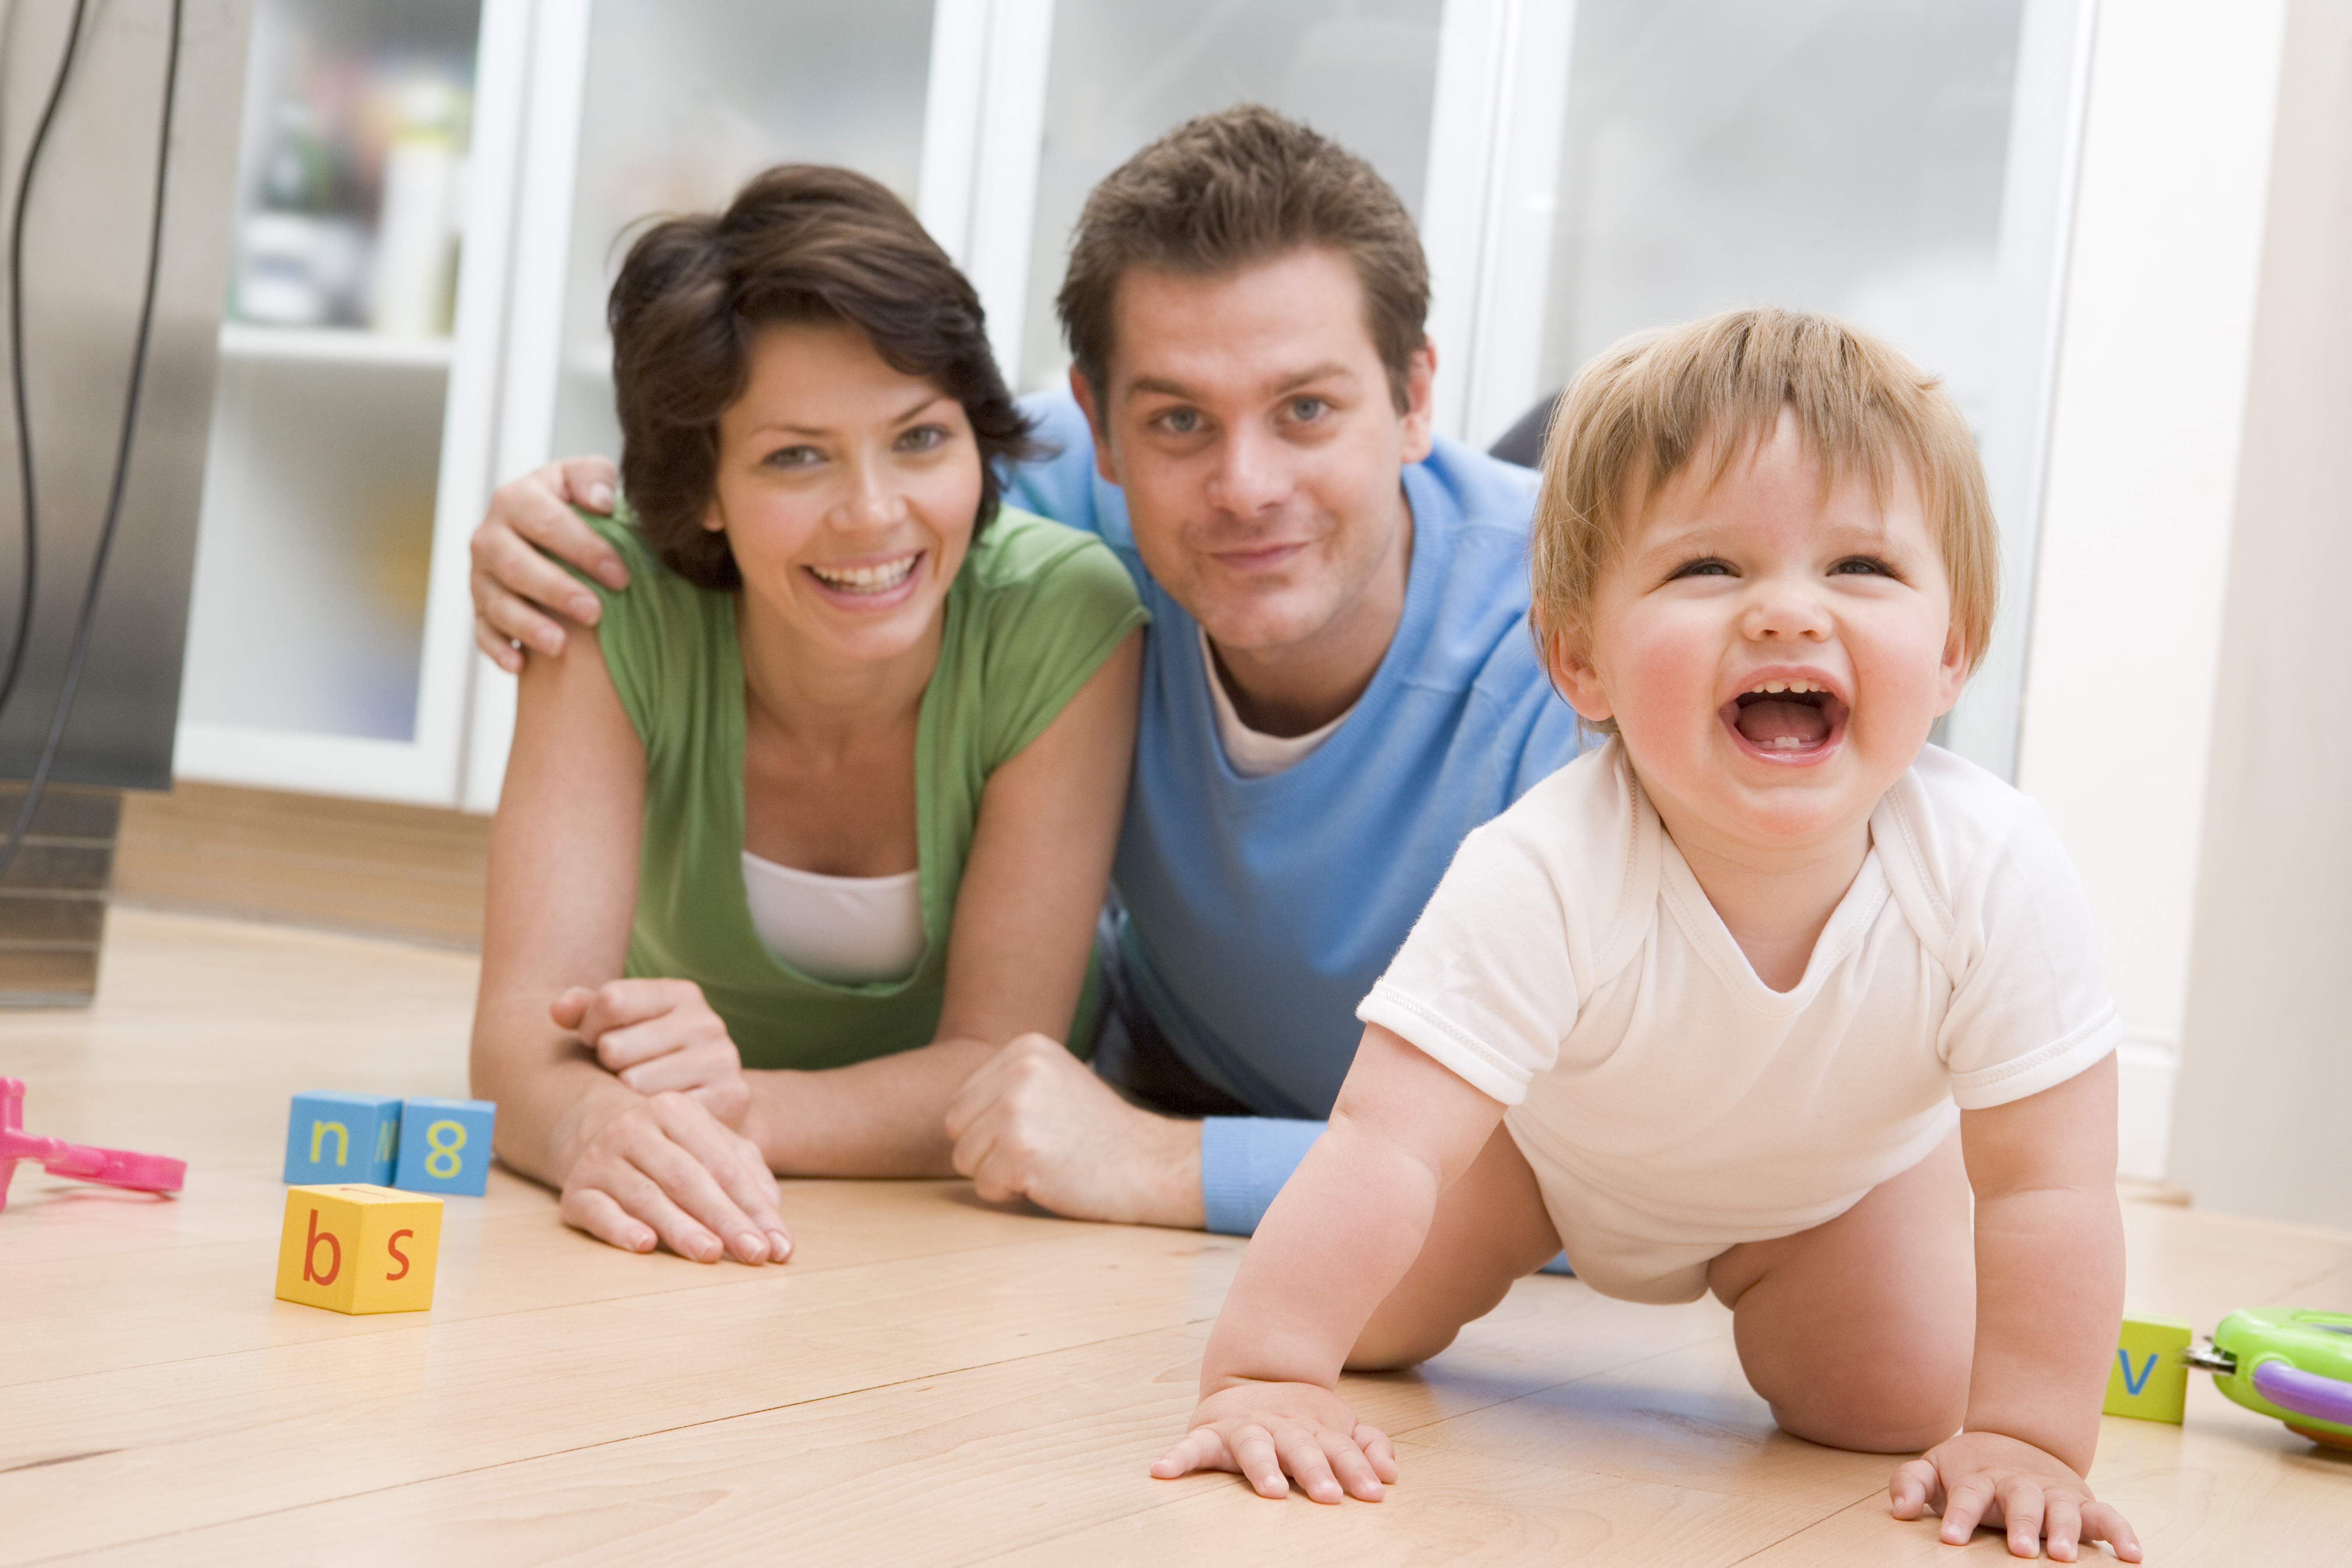 Crawling baby with parents - long distance moving companies Gillette